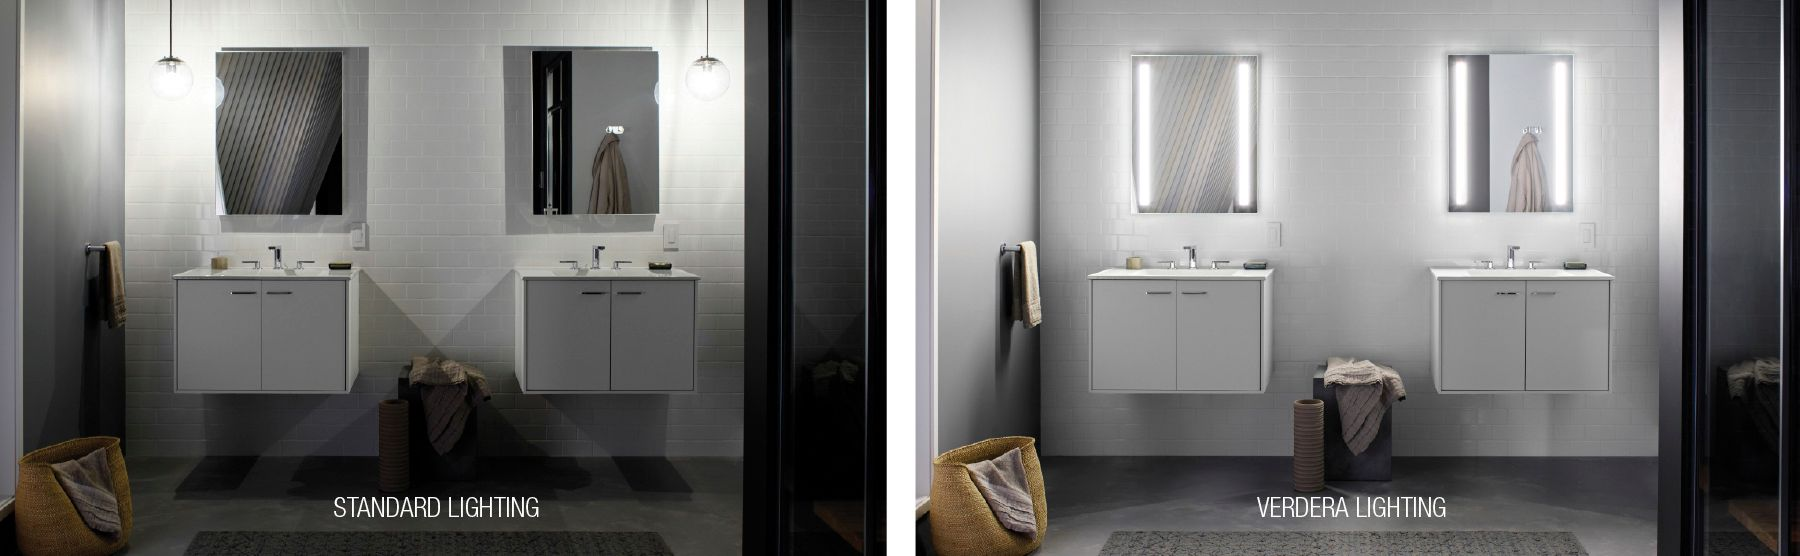 Medicine cabinet with side lighting - The Verdera Collection Now Offers Lighted Mirrors And Medicine Cabinets They Provide Even Optimally Bright Lighting Which Eliminates Harsh Shadows And